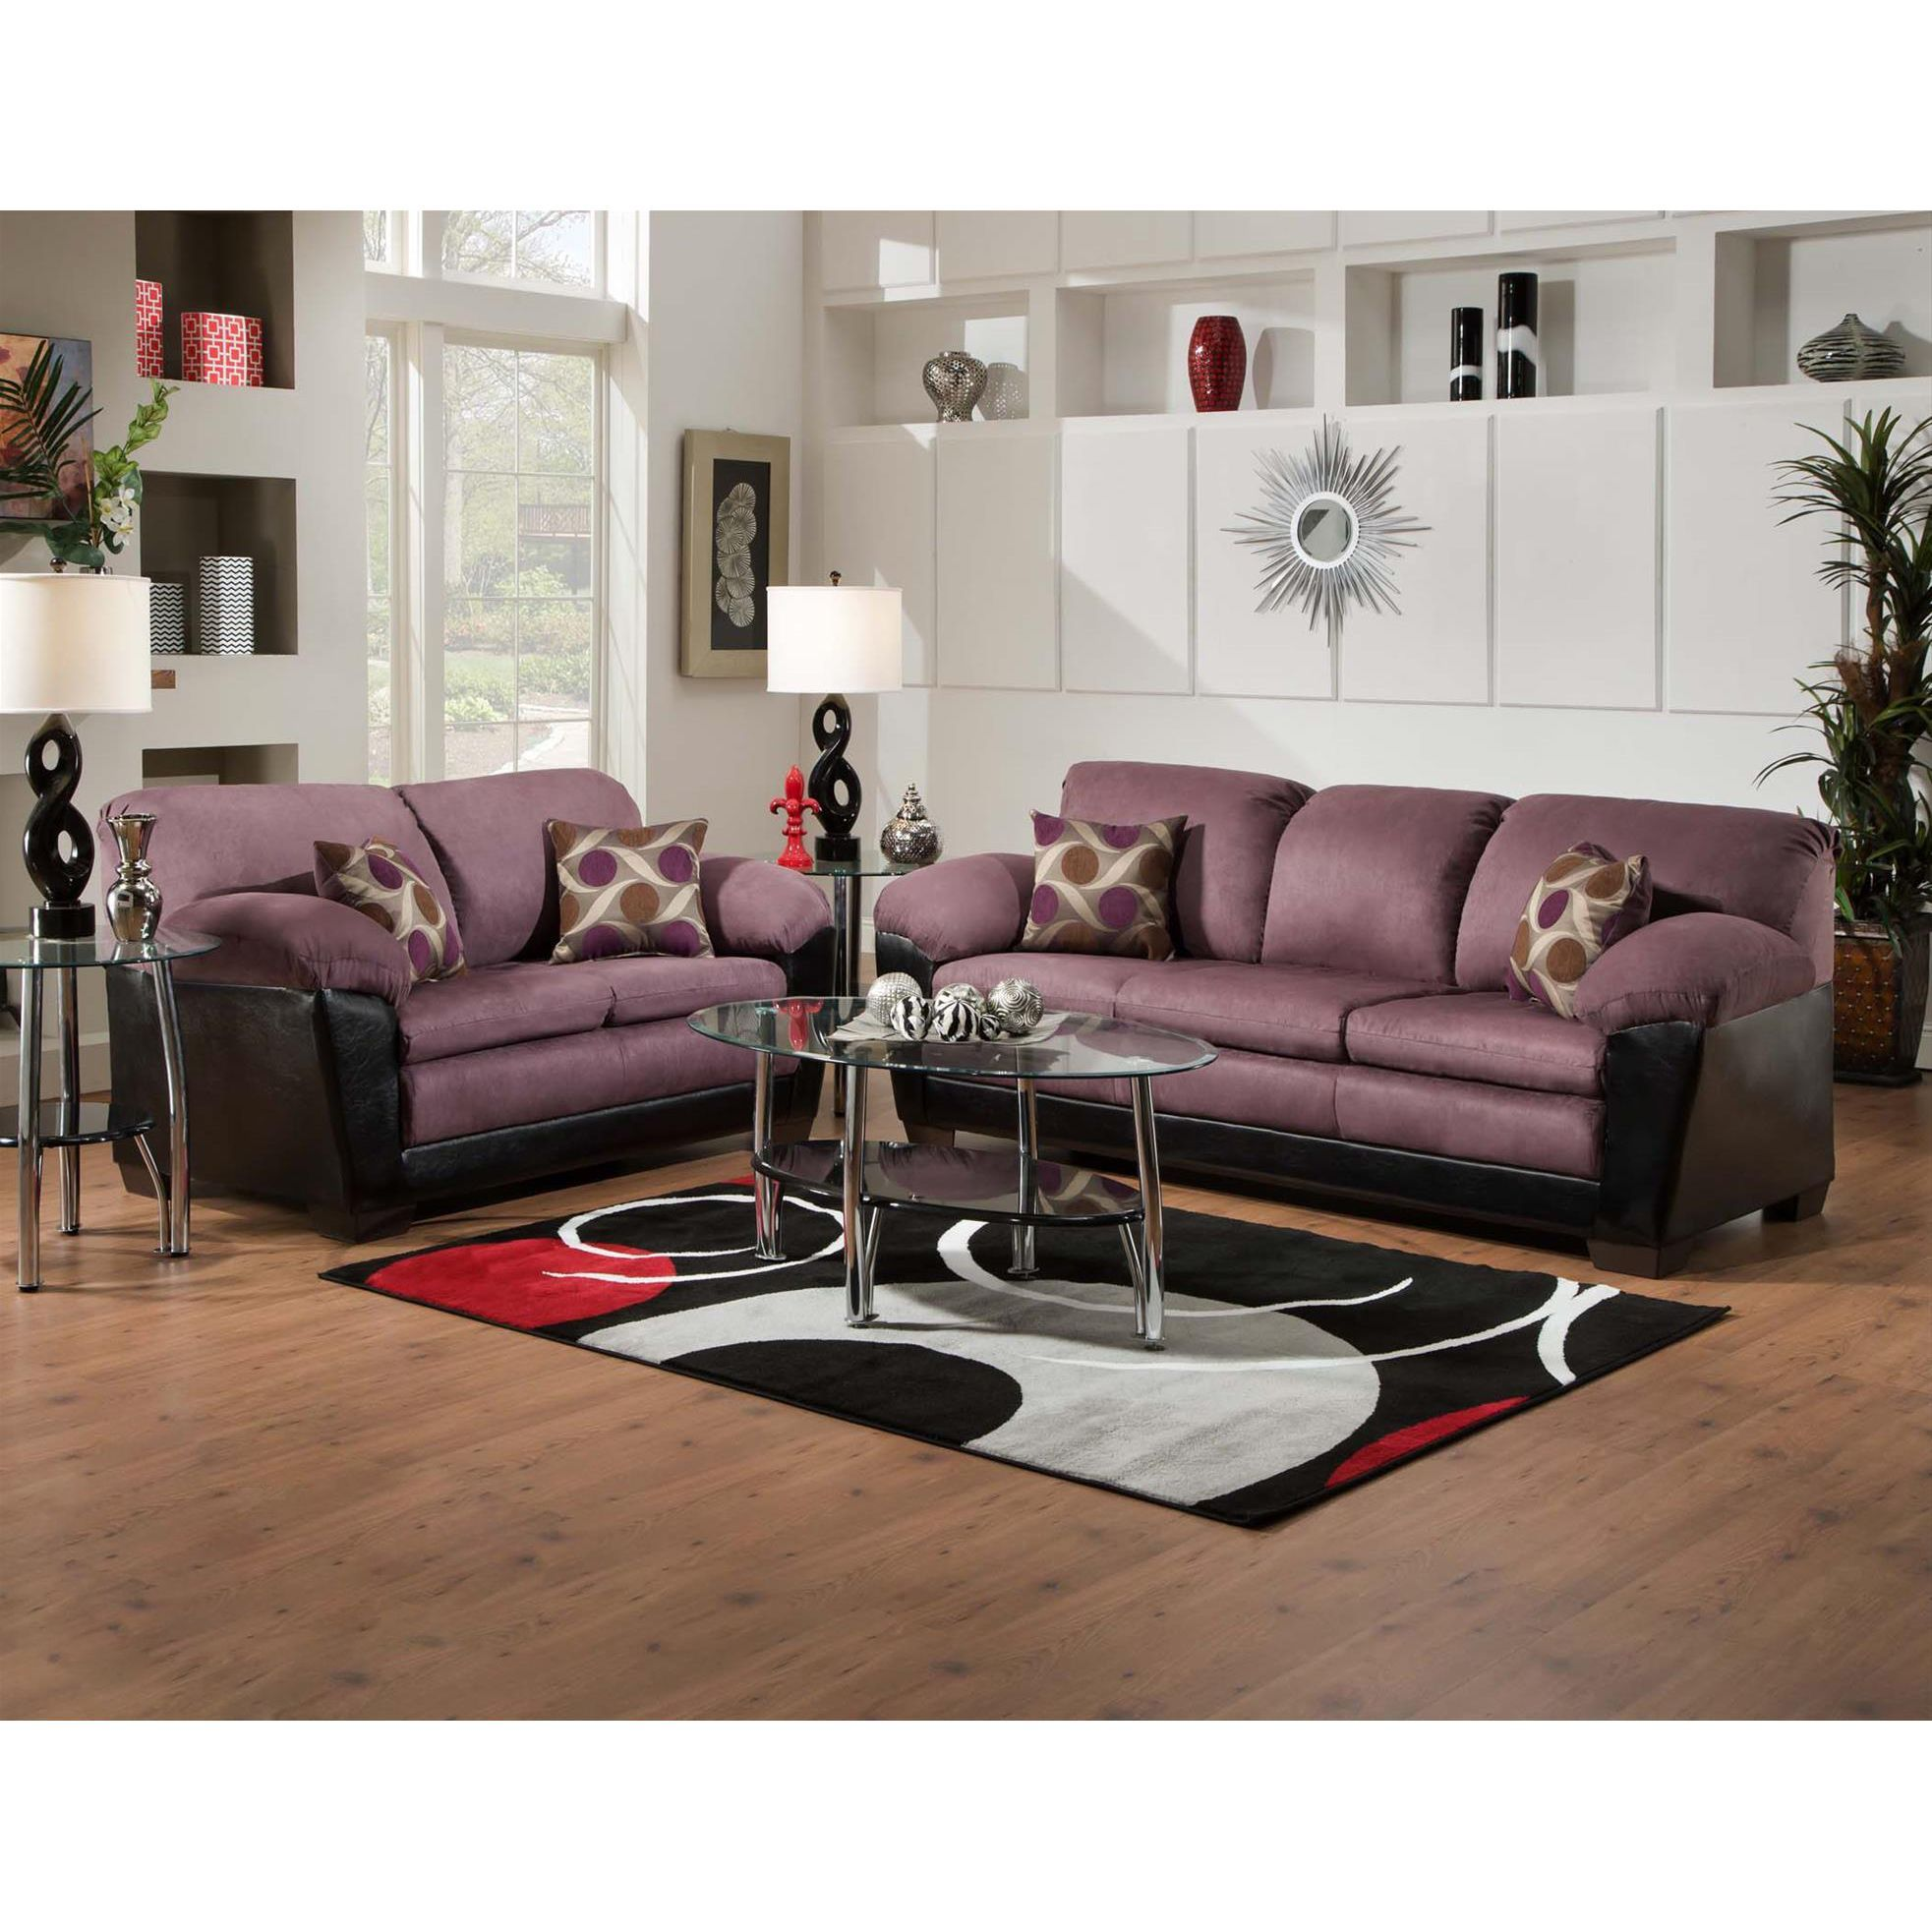 SOFA TRENDZ Anita Eggplant Fabric 2 piece Sofa and Loveseat